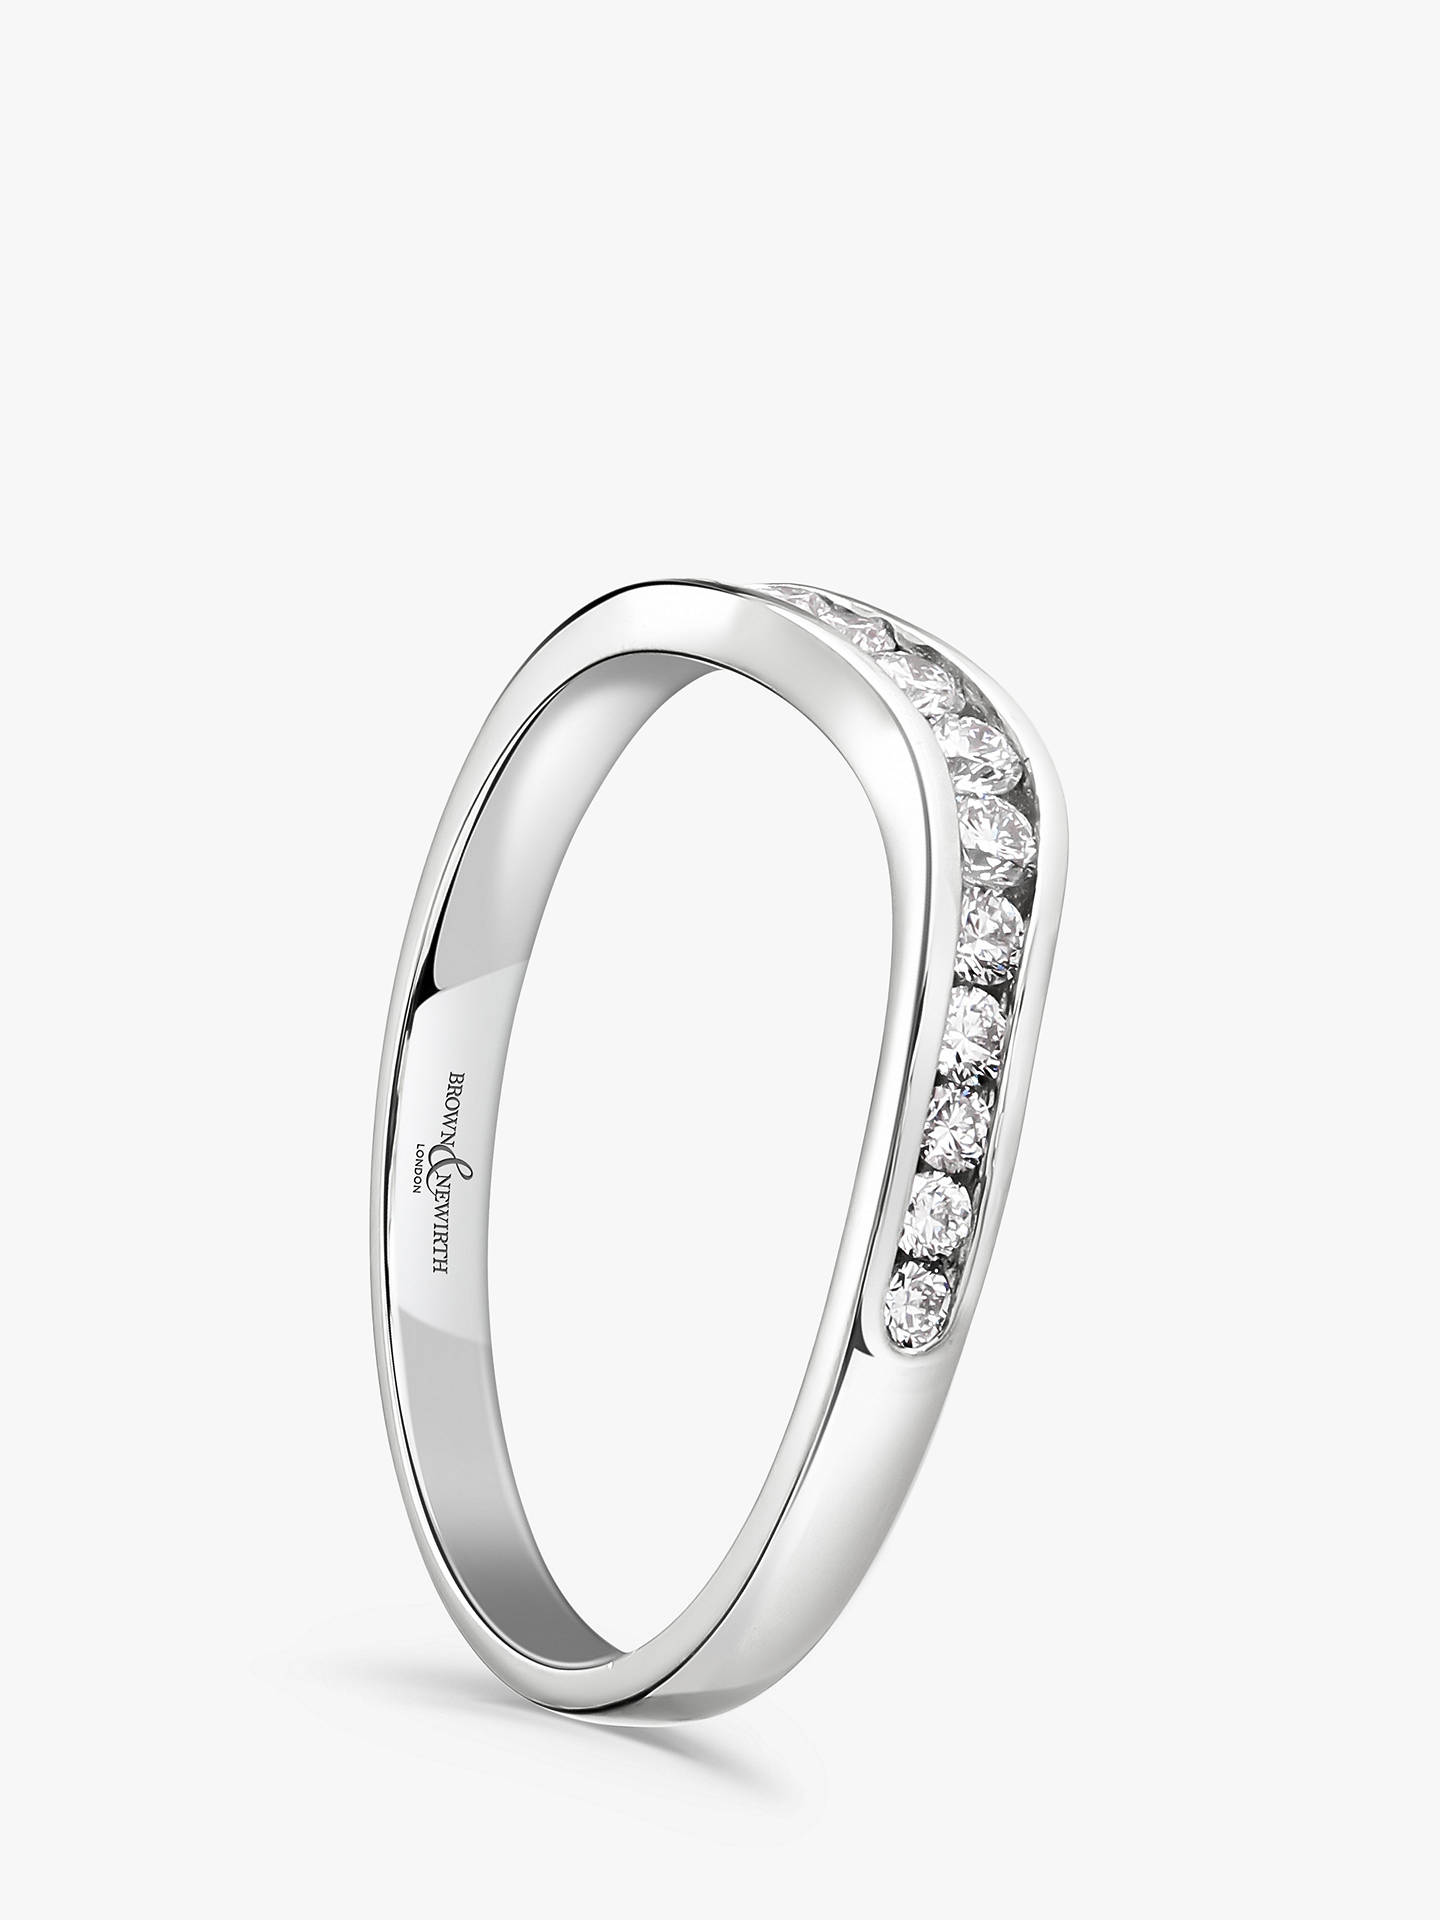 BuyBrown & Newirth Platinum Diamond Wedding Ring, 0.26ct Online at johnlewis.com